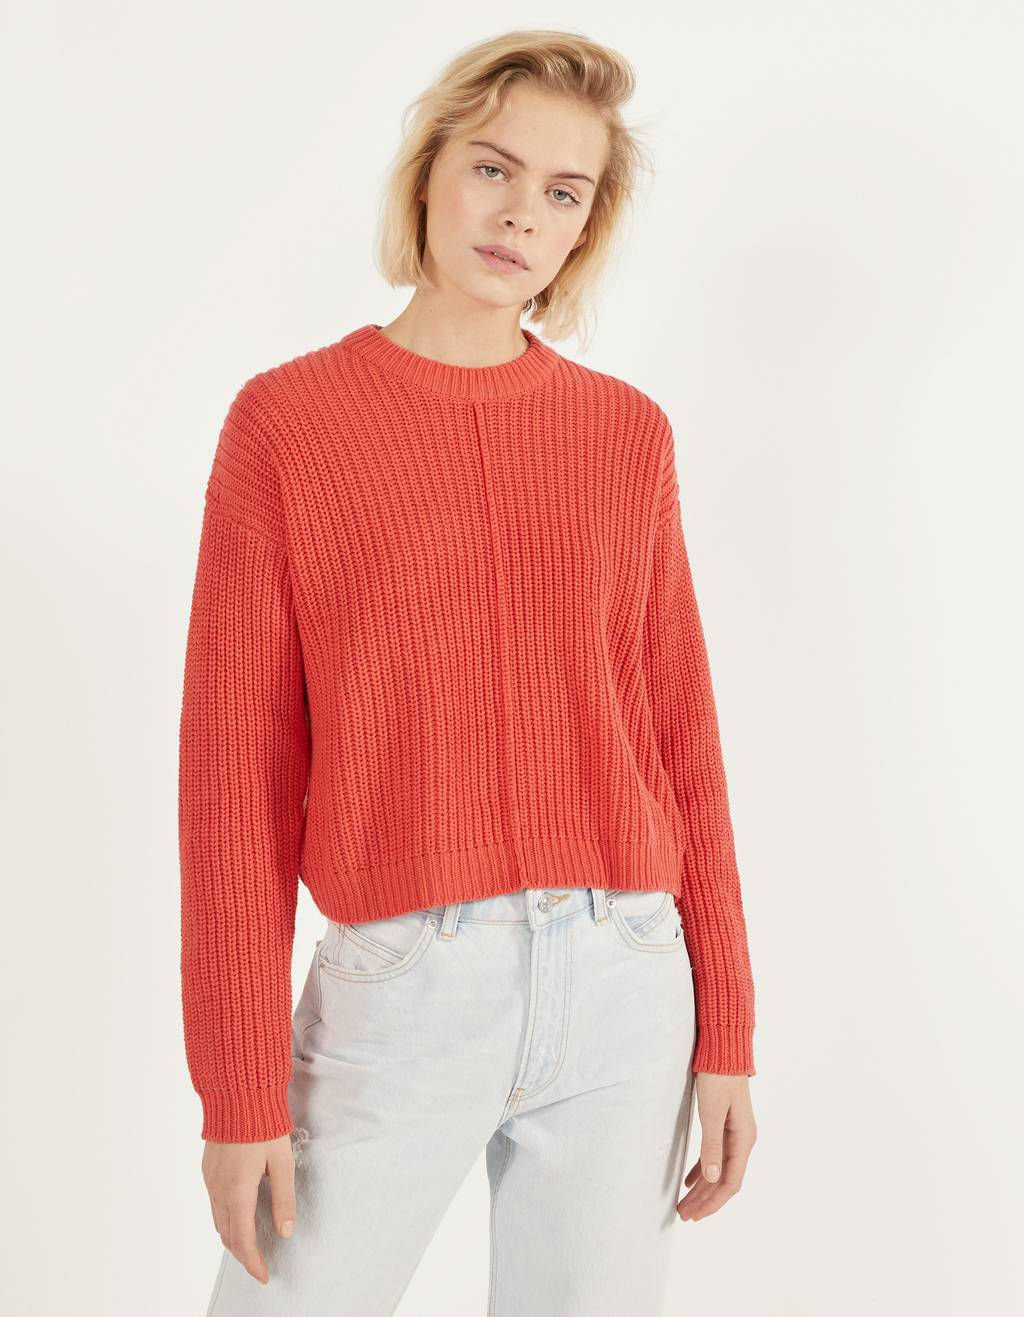 Round neck oversized sweater